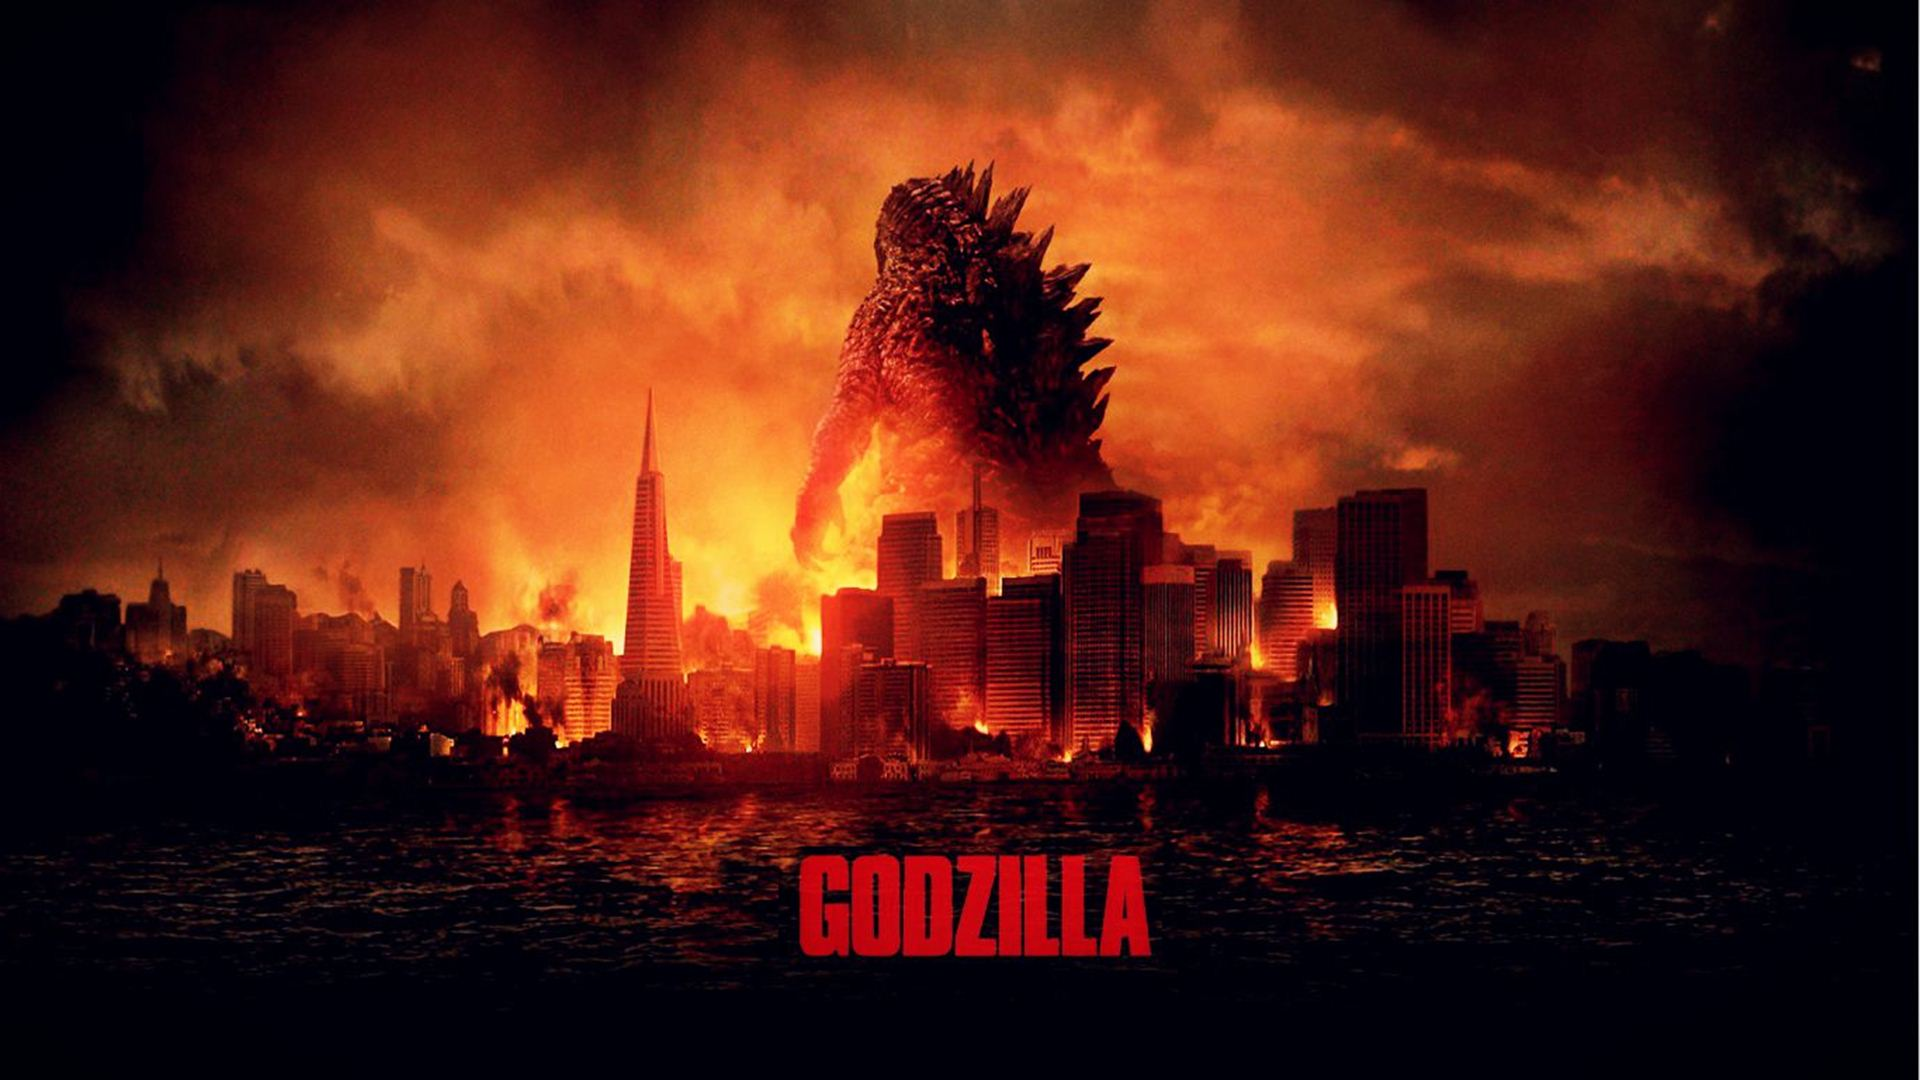 Godzilla 2014 HQ wallpapers